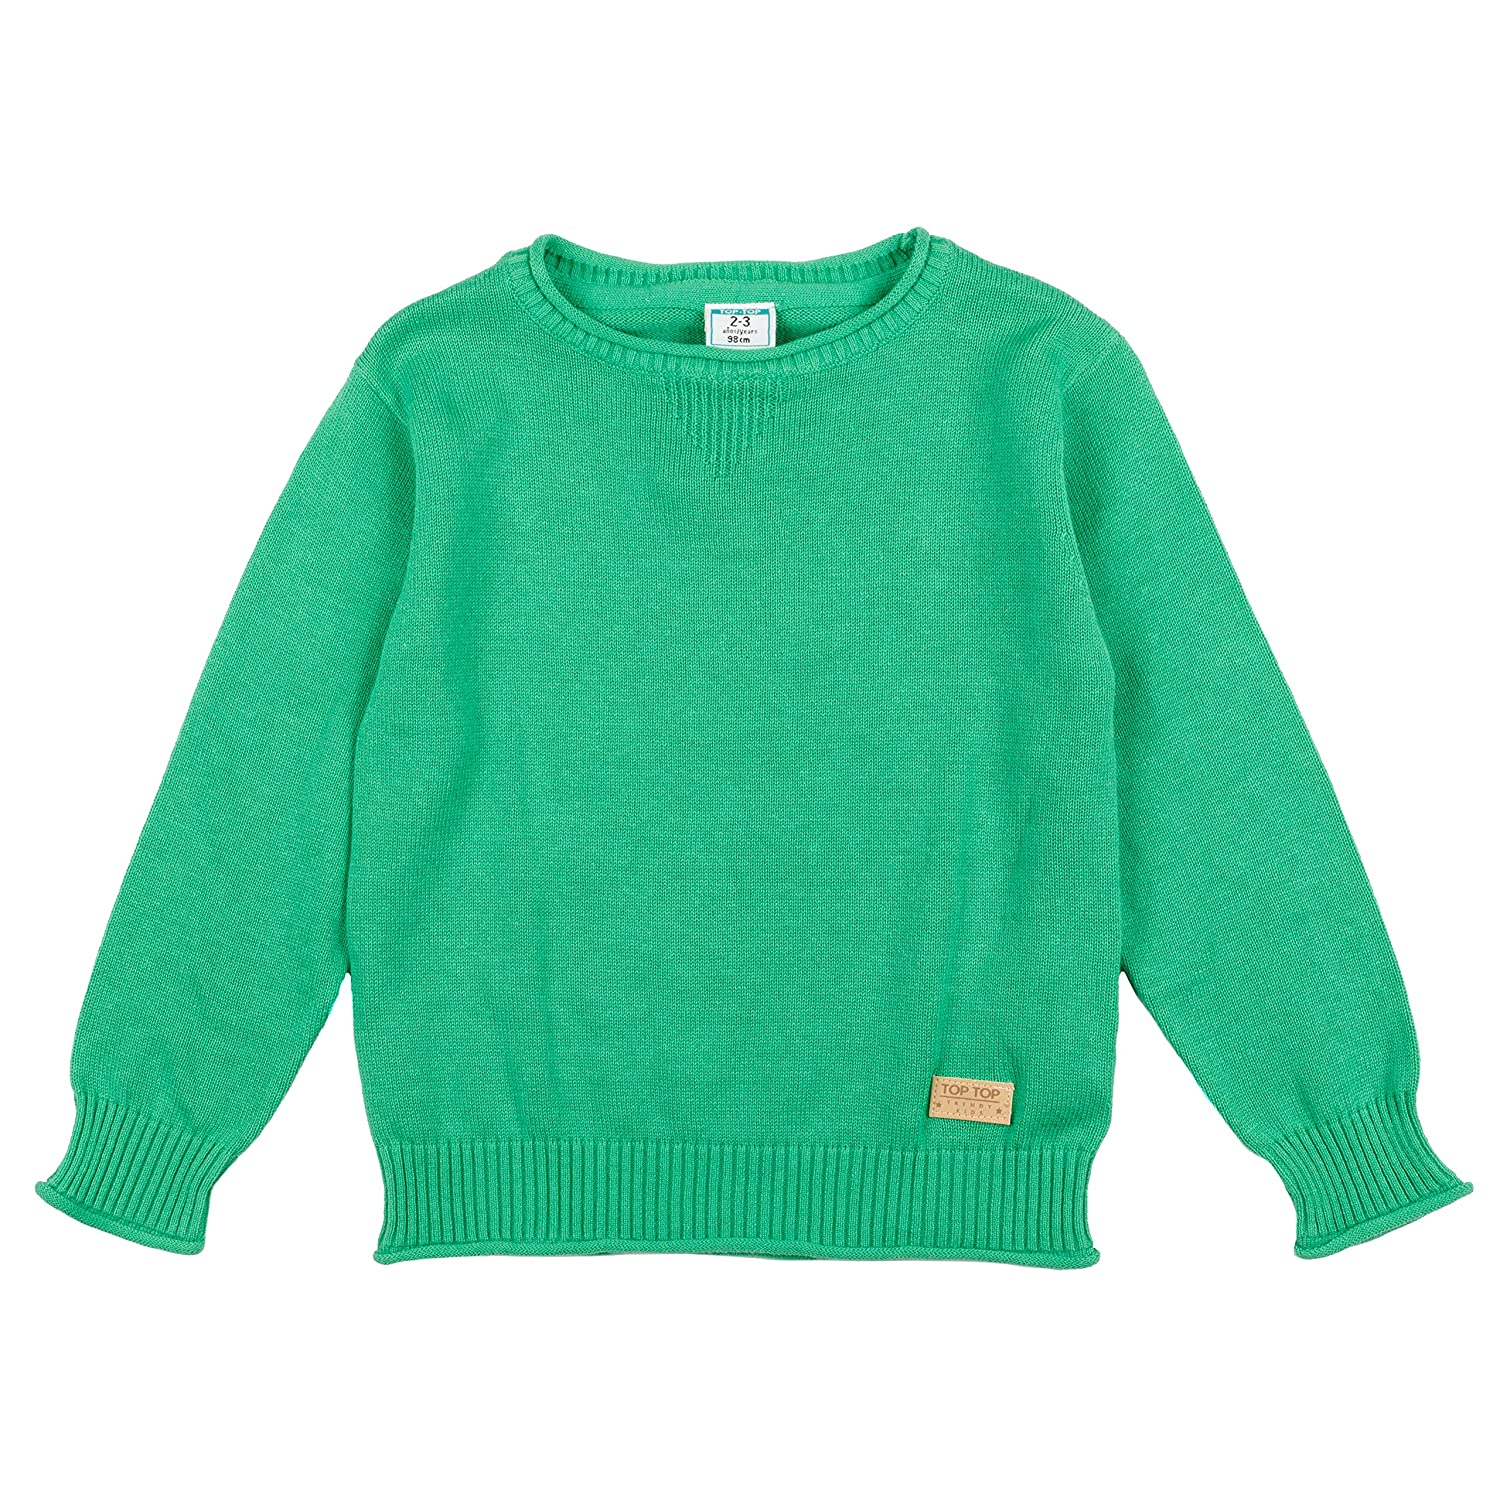 Top Top Boy's Jurkeso Jumper 70247